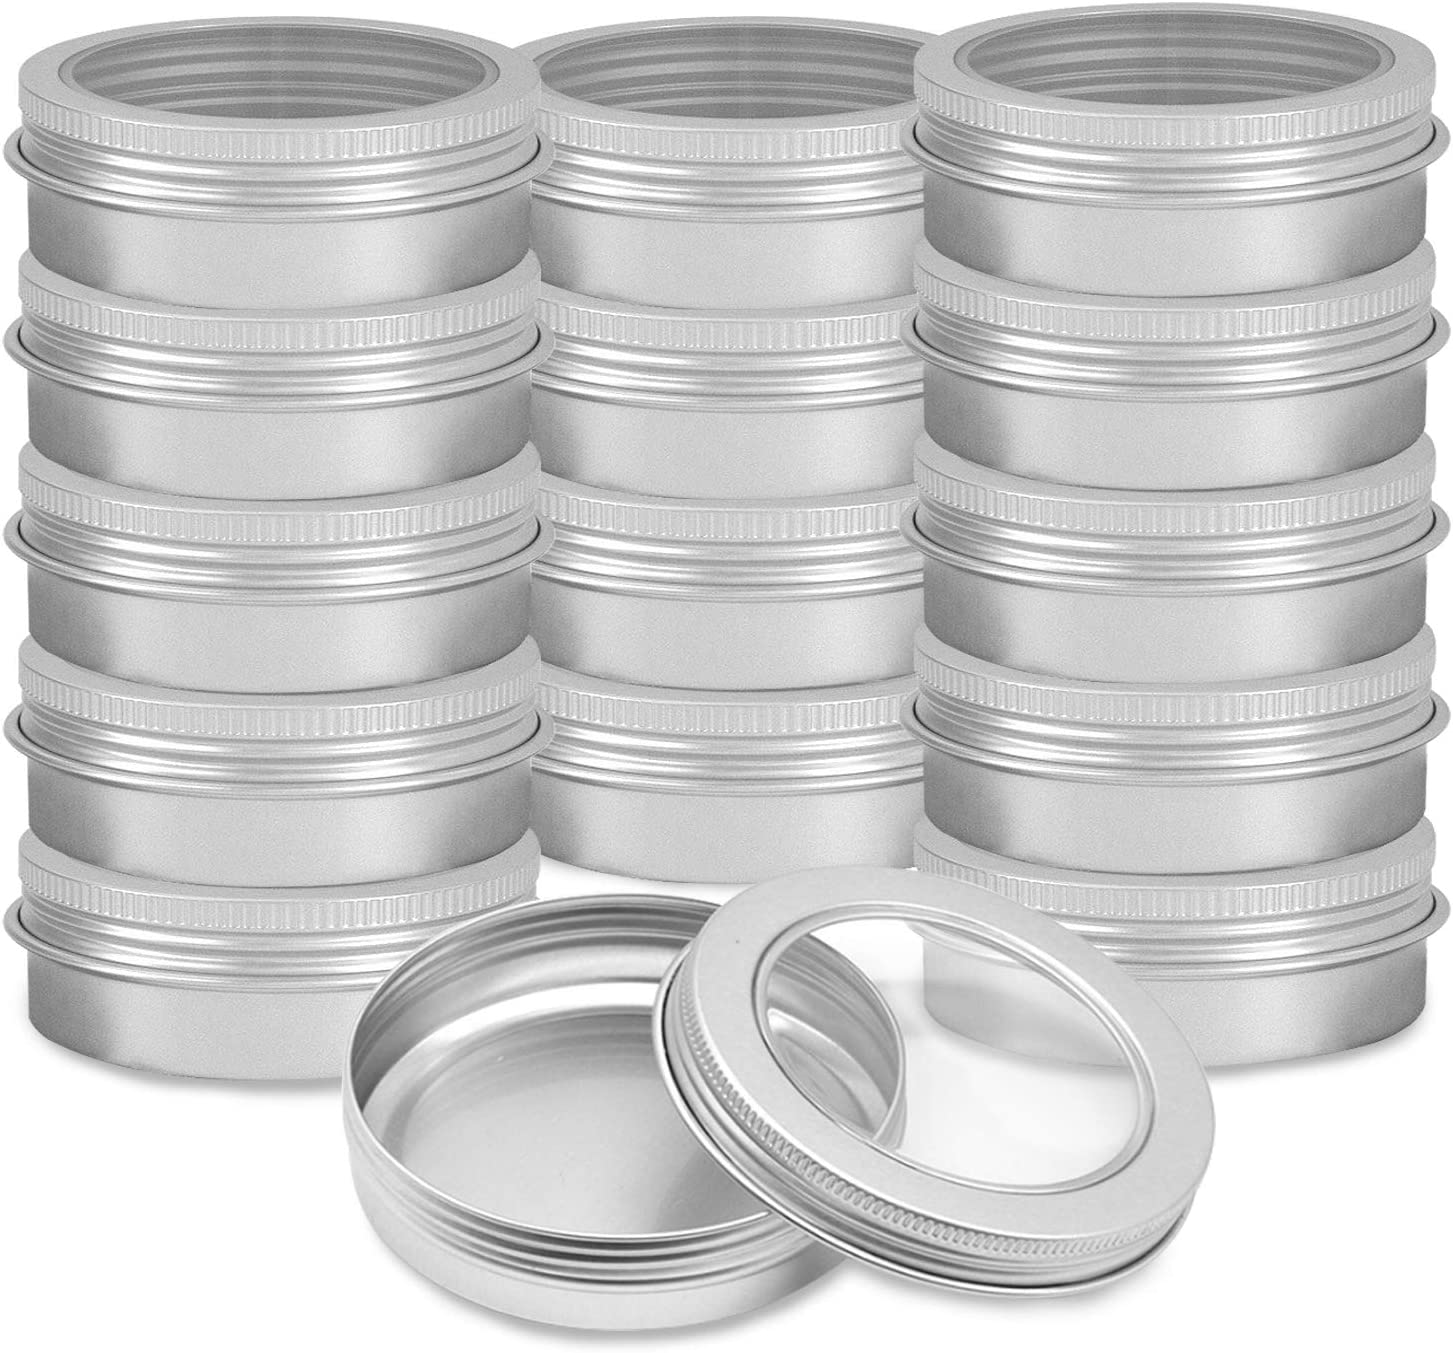 Lainrrew 15 Pack 2oz Metal Round Tins, Aluminum Tin Cans Containers Small Metal Tin Containers with Clear Top and Screw Lids for Spices, Candies, Candles (2oz)